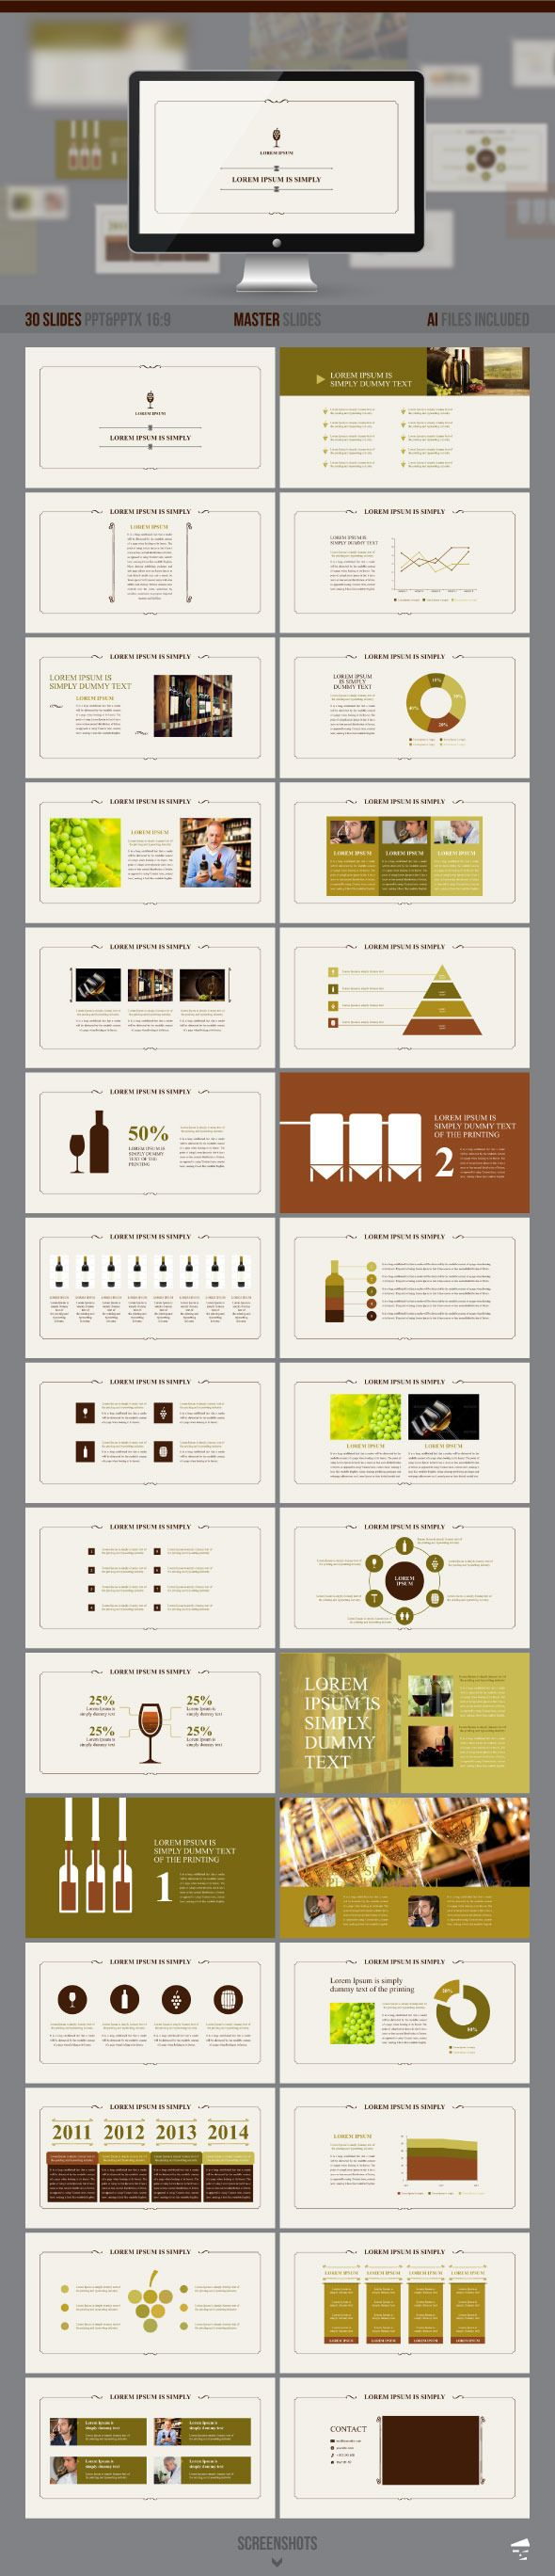 PowerPoint Template #powerpoint #powerpointtemplate #presentation Download: http://graphicriver.net/item/presentation-of-wine/8791818?ref=ksioks